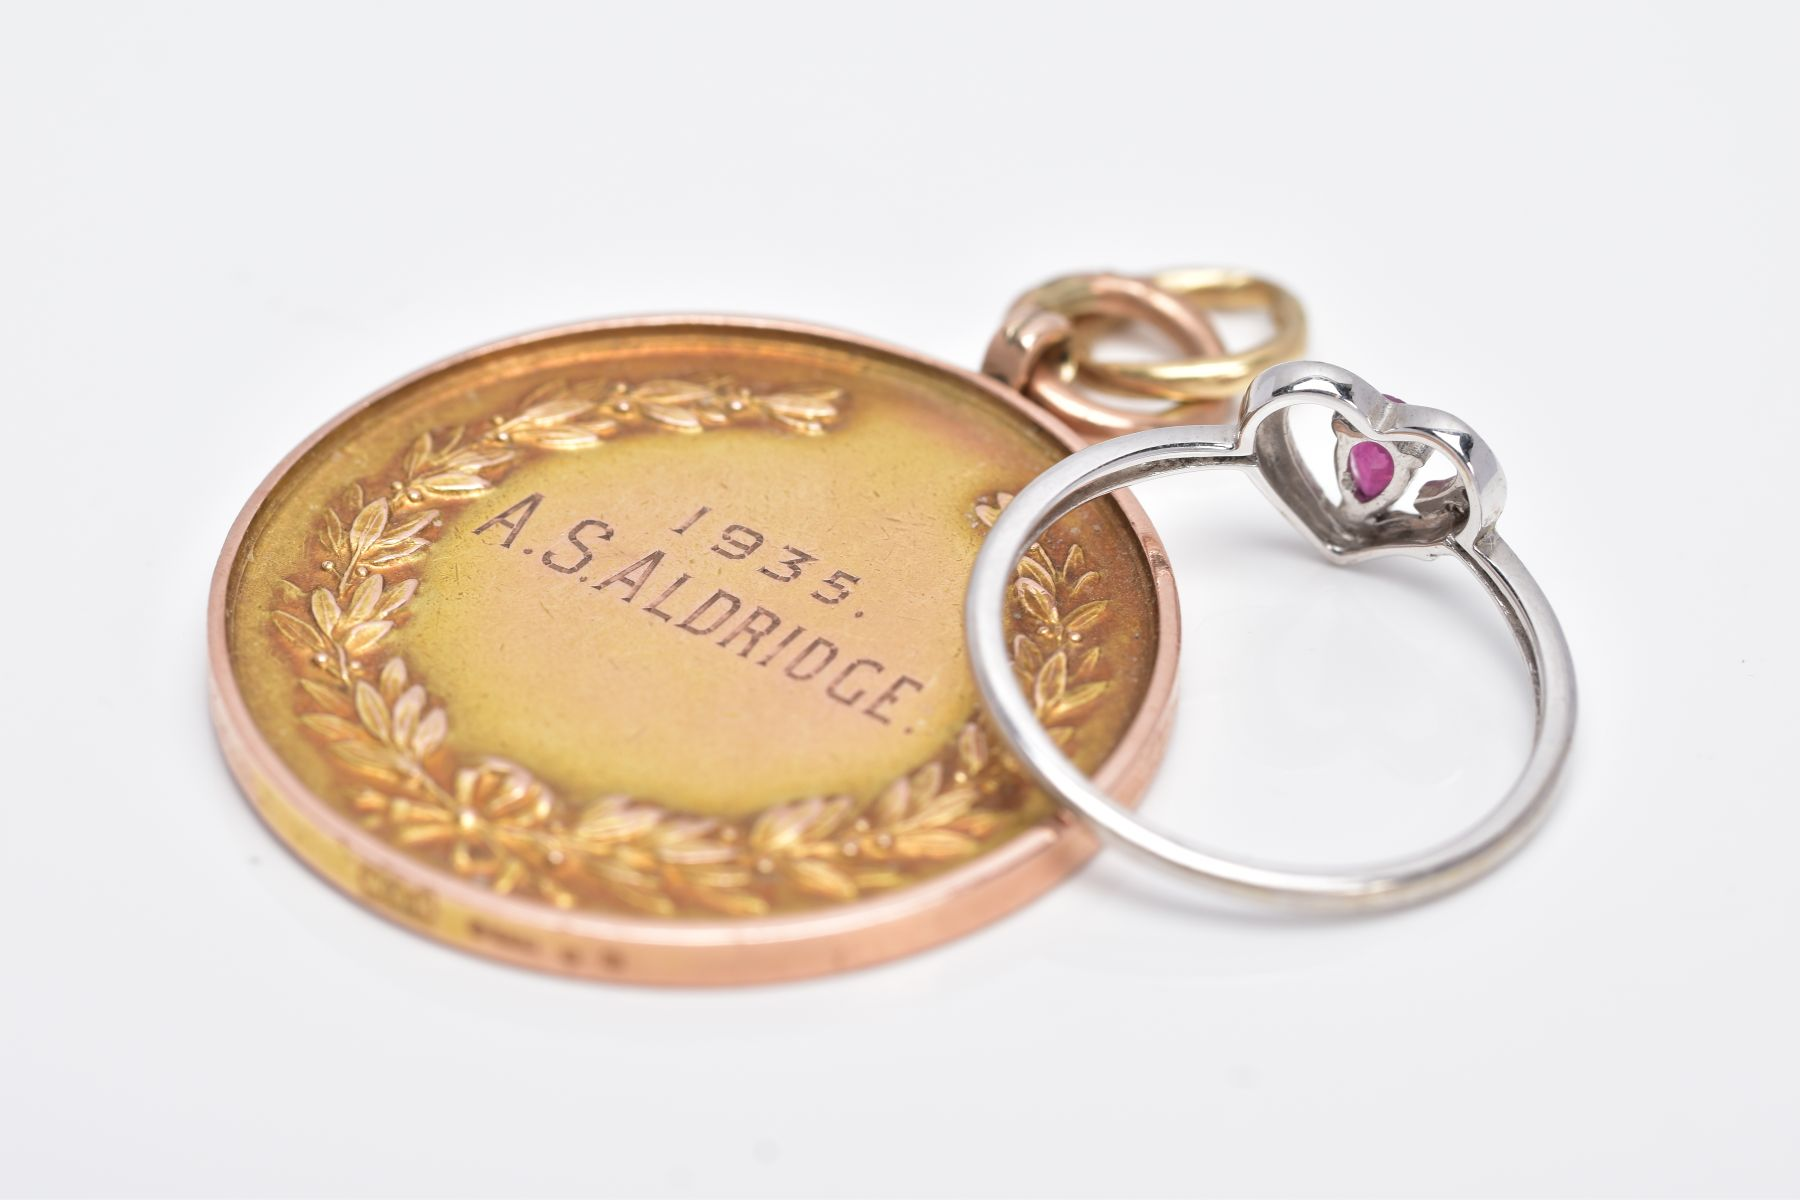 A 9CT GOLD MOUNTED MEDAL AND A 9CT WHITE GOLD RUBY AND DIAMOND RING, the medal of a circular form, - Image 4 of 4